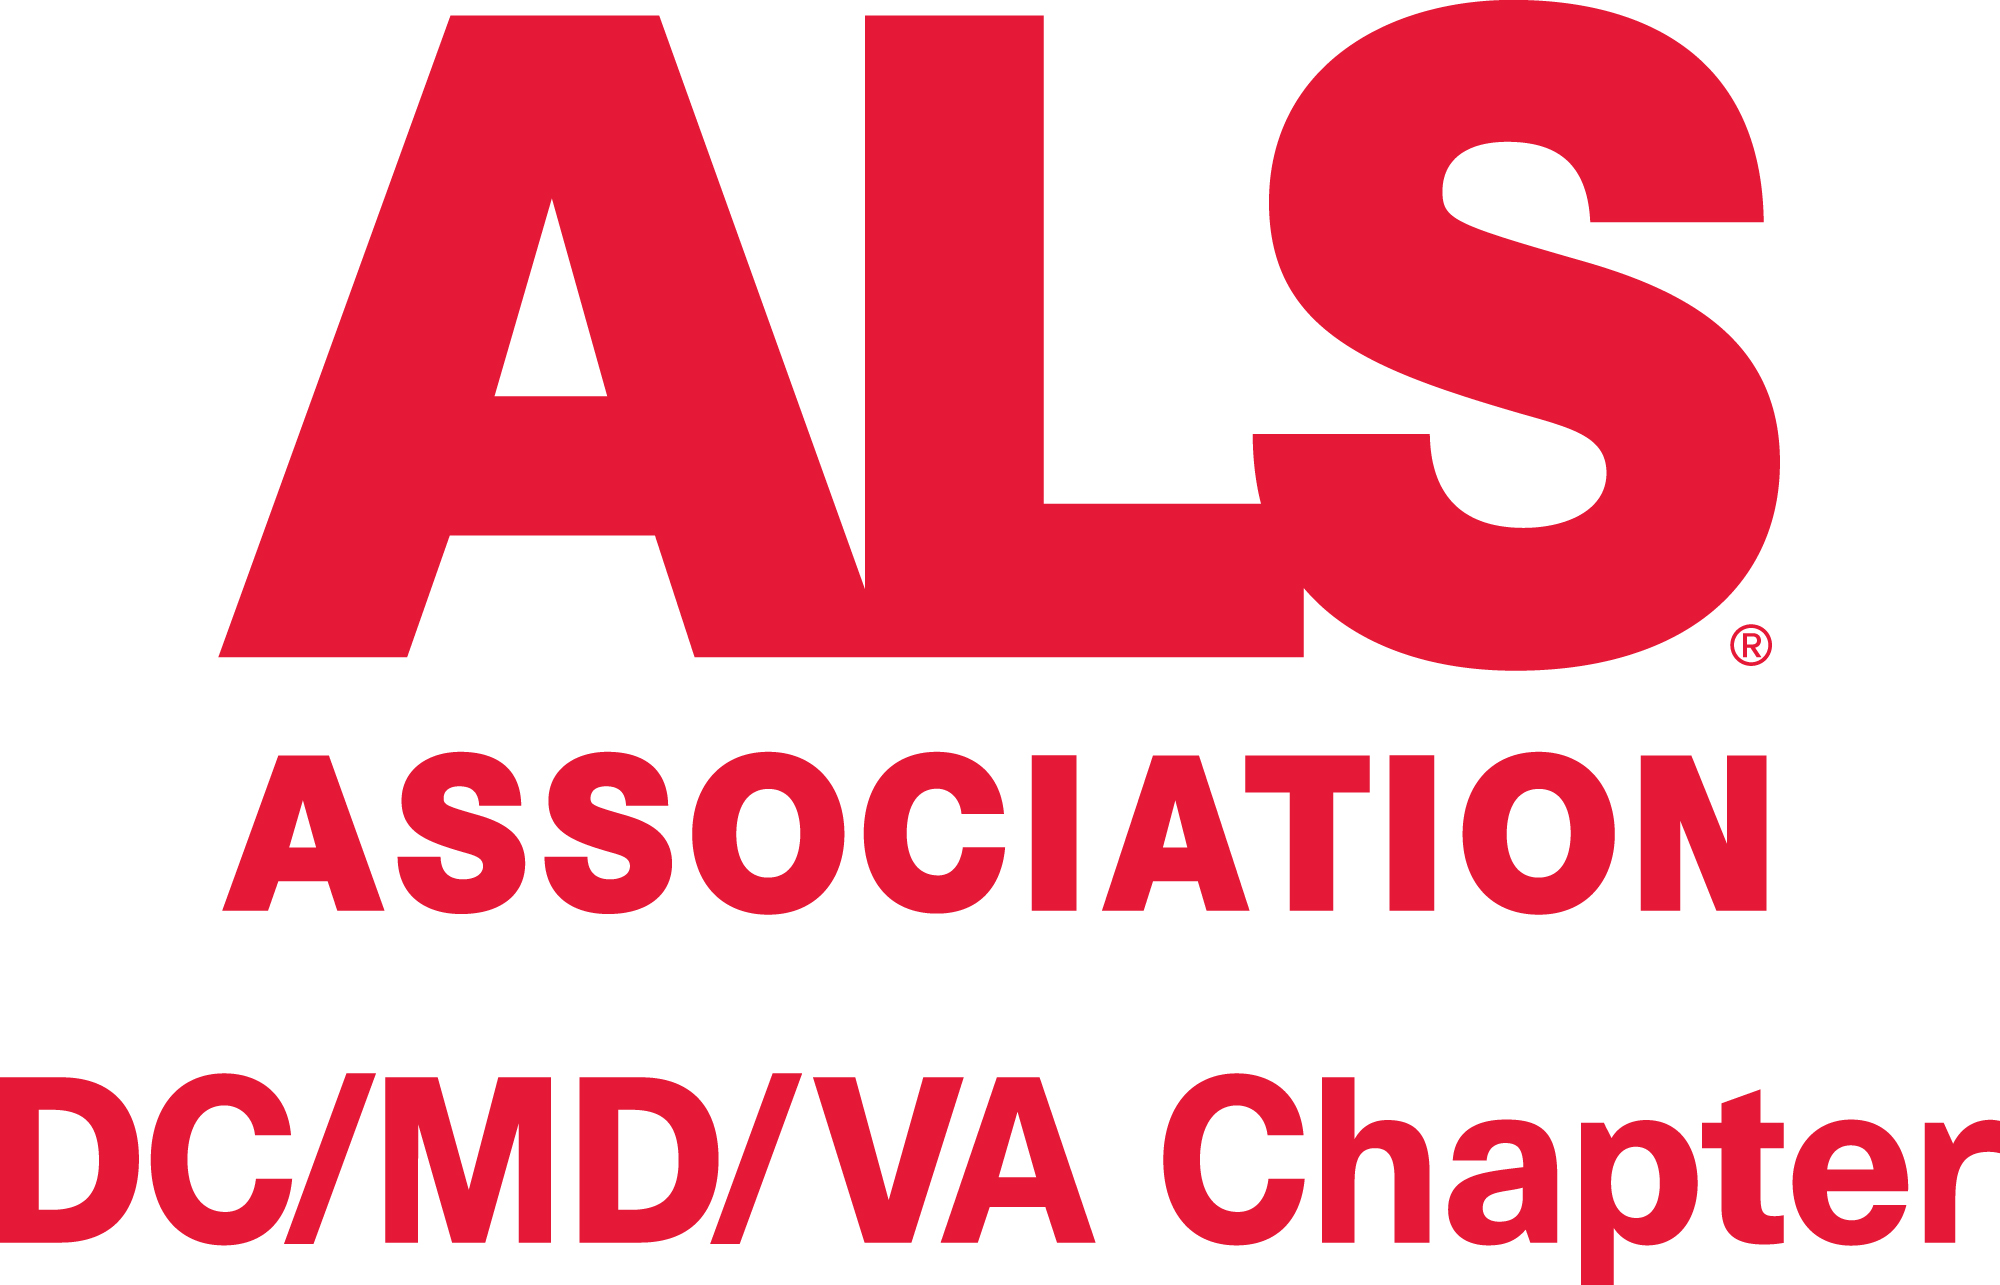 Logo of charity The ALS Association - DC/MD/VA Chapter